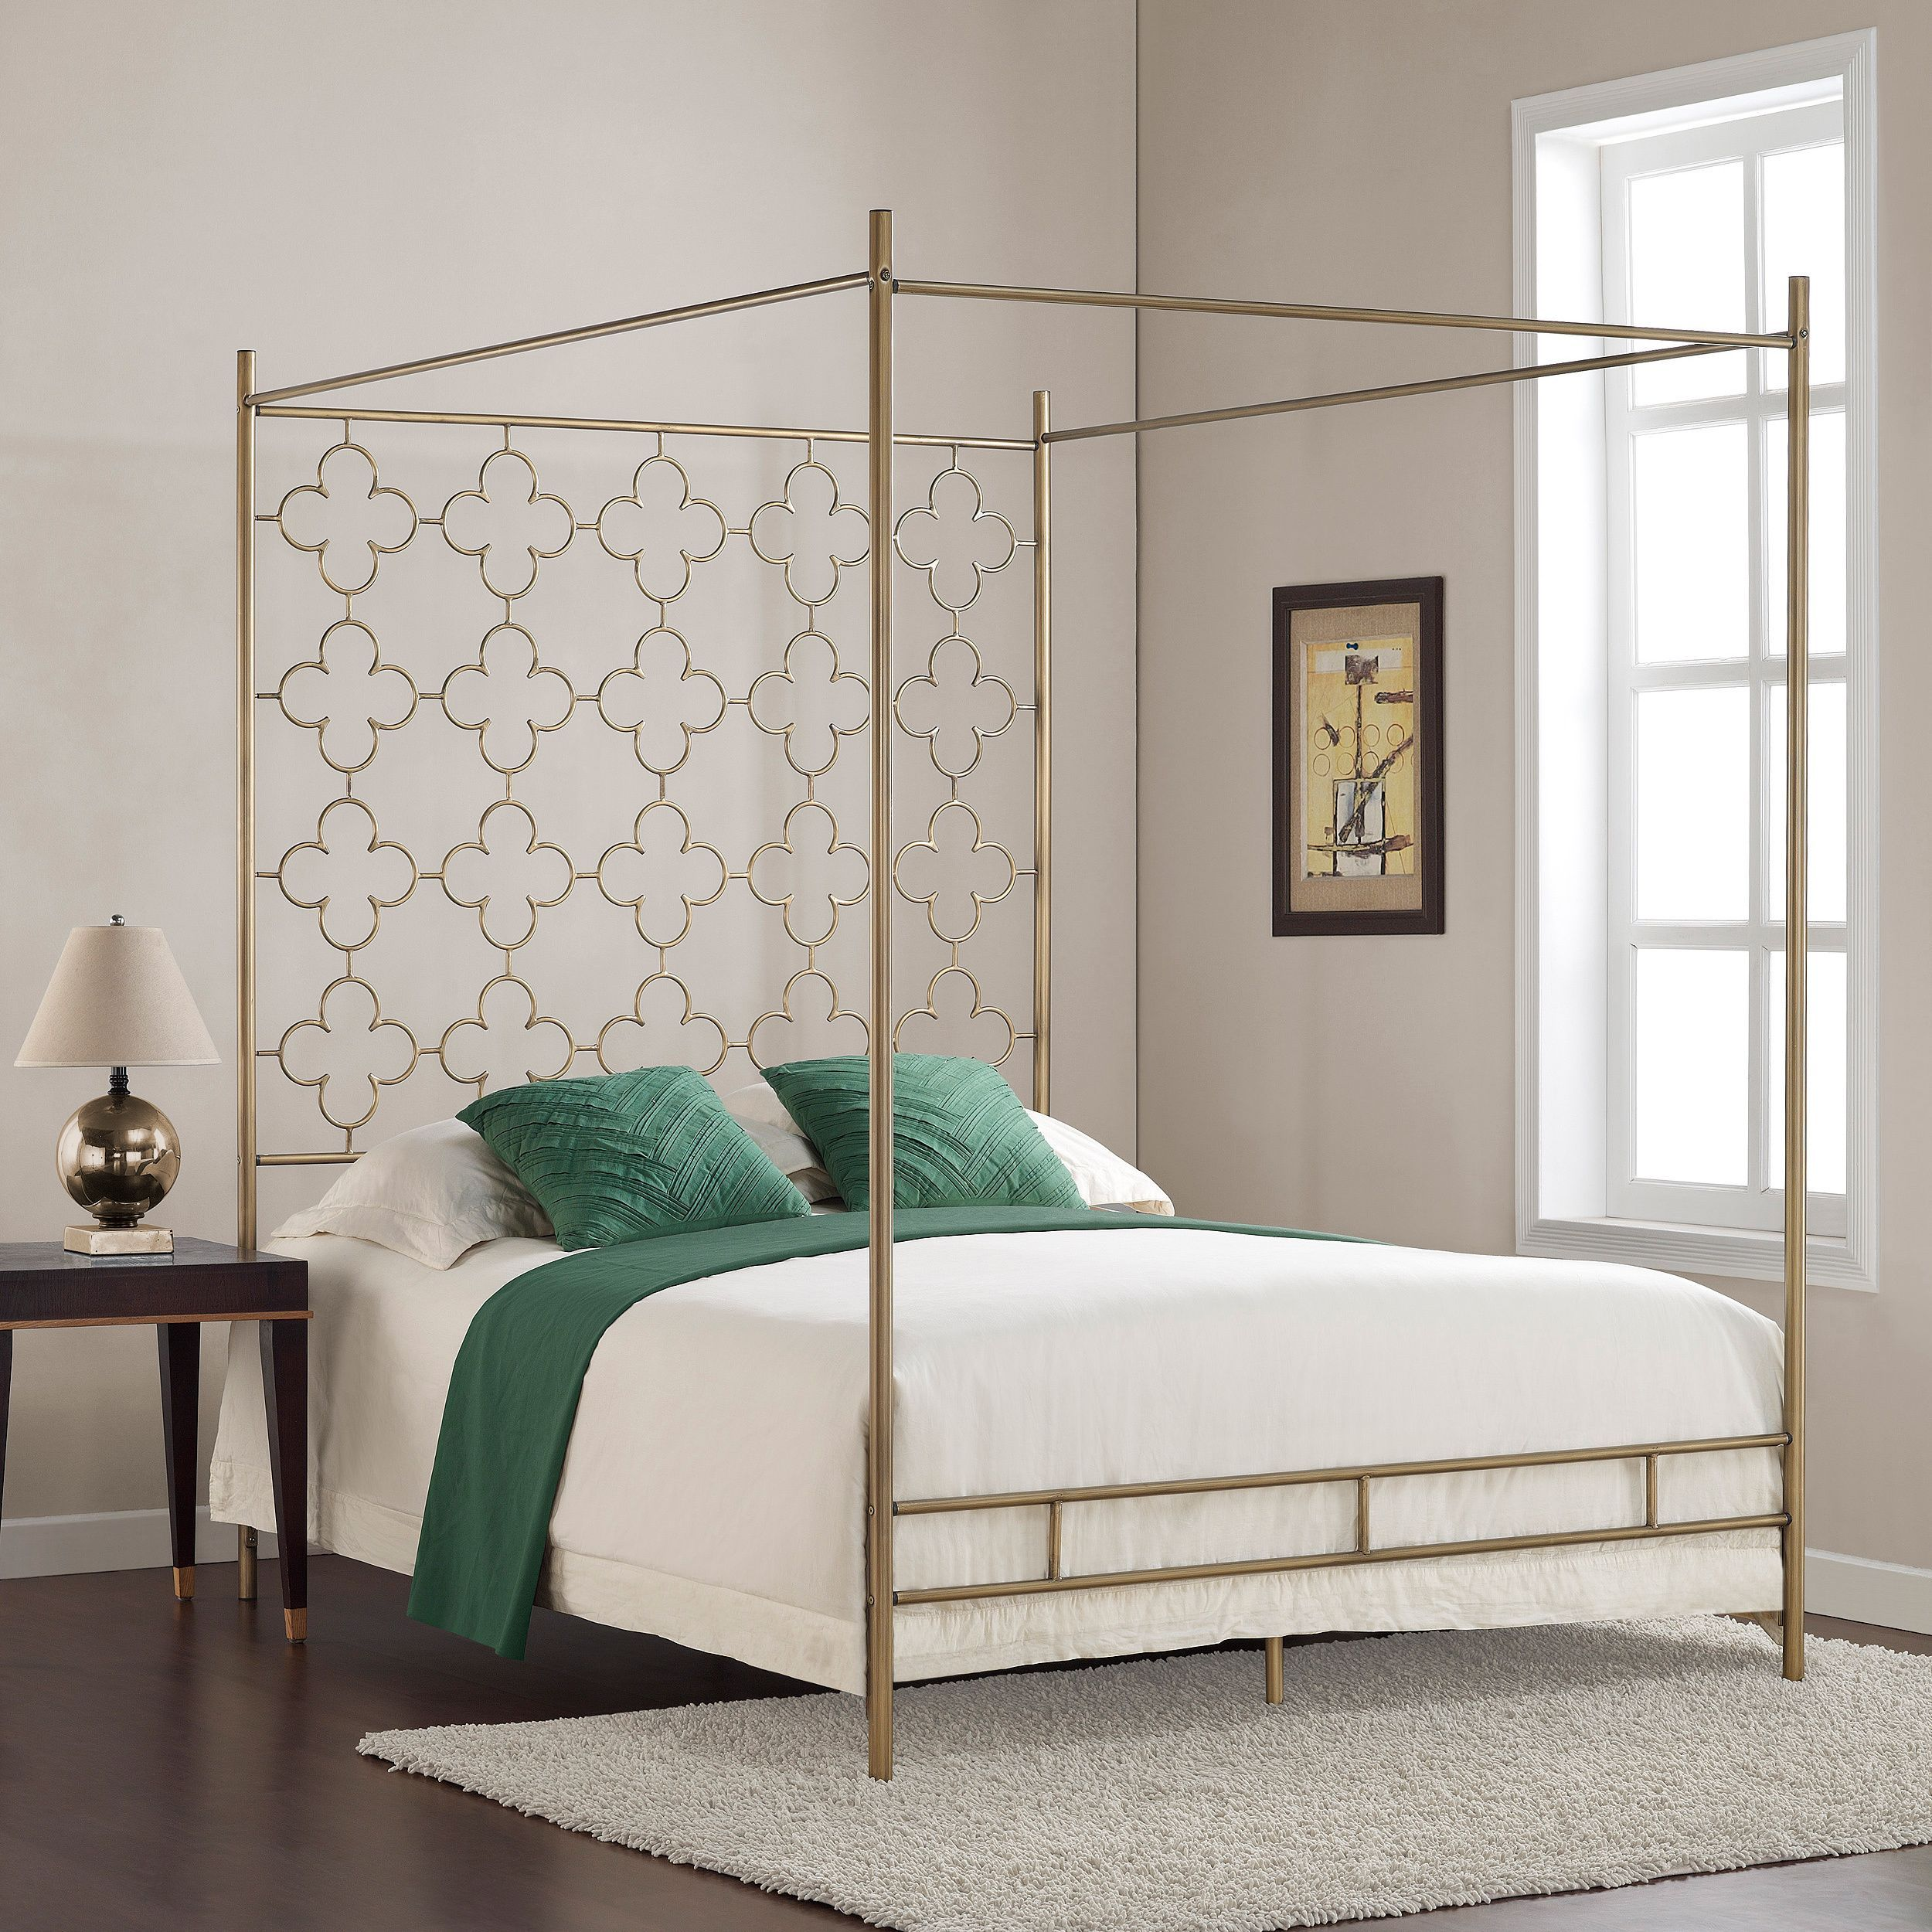 Beautiful quatrefoil metal designs accentuate the Beautiful canopy beds